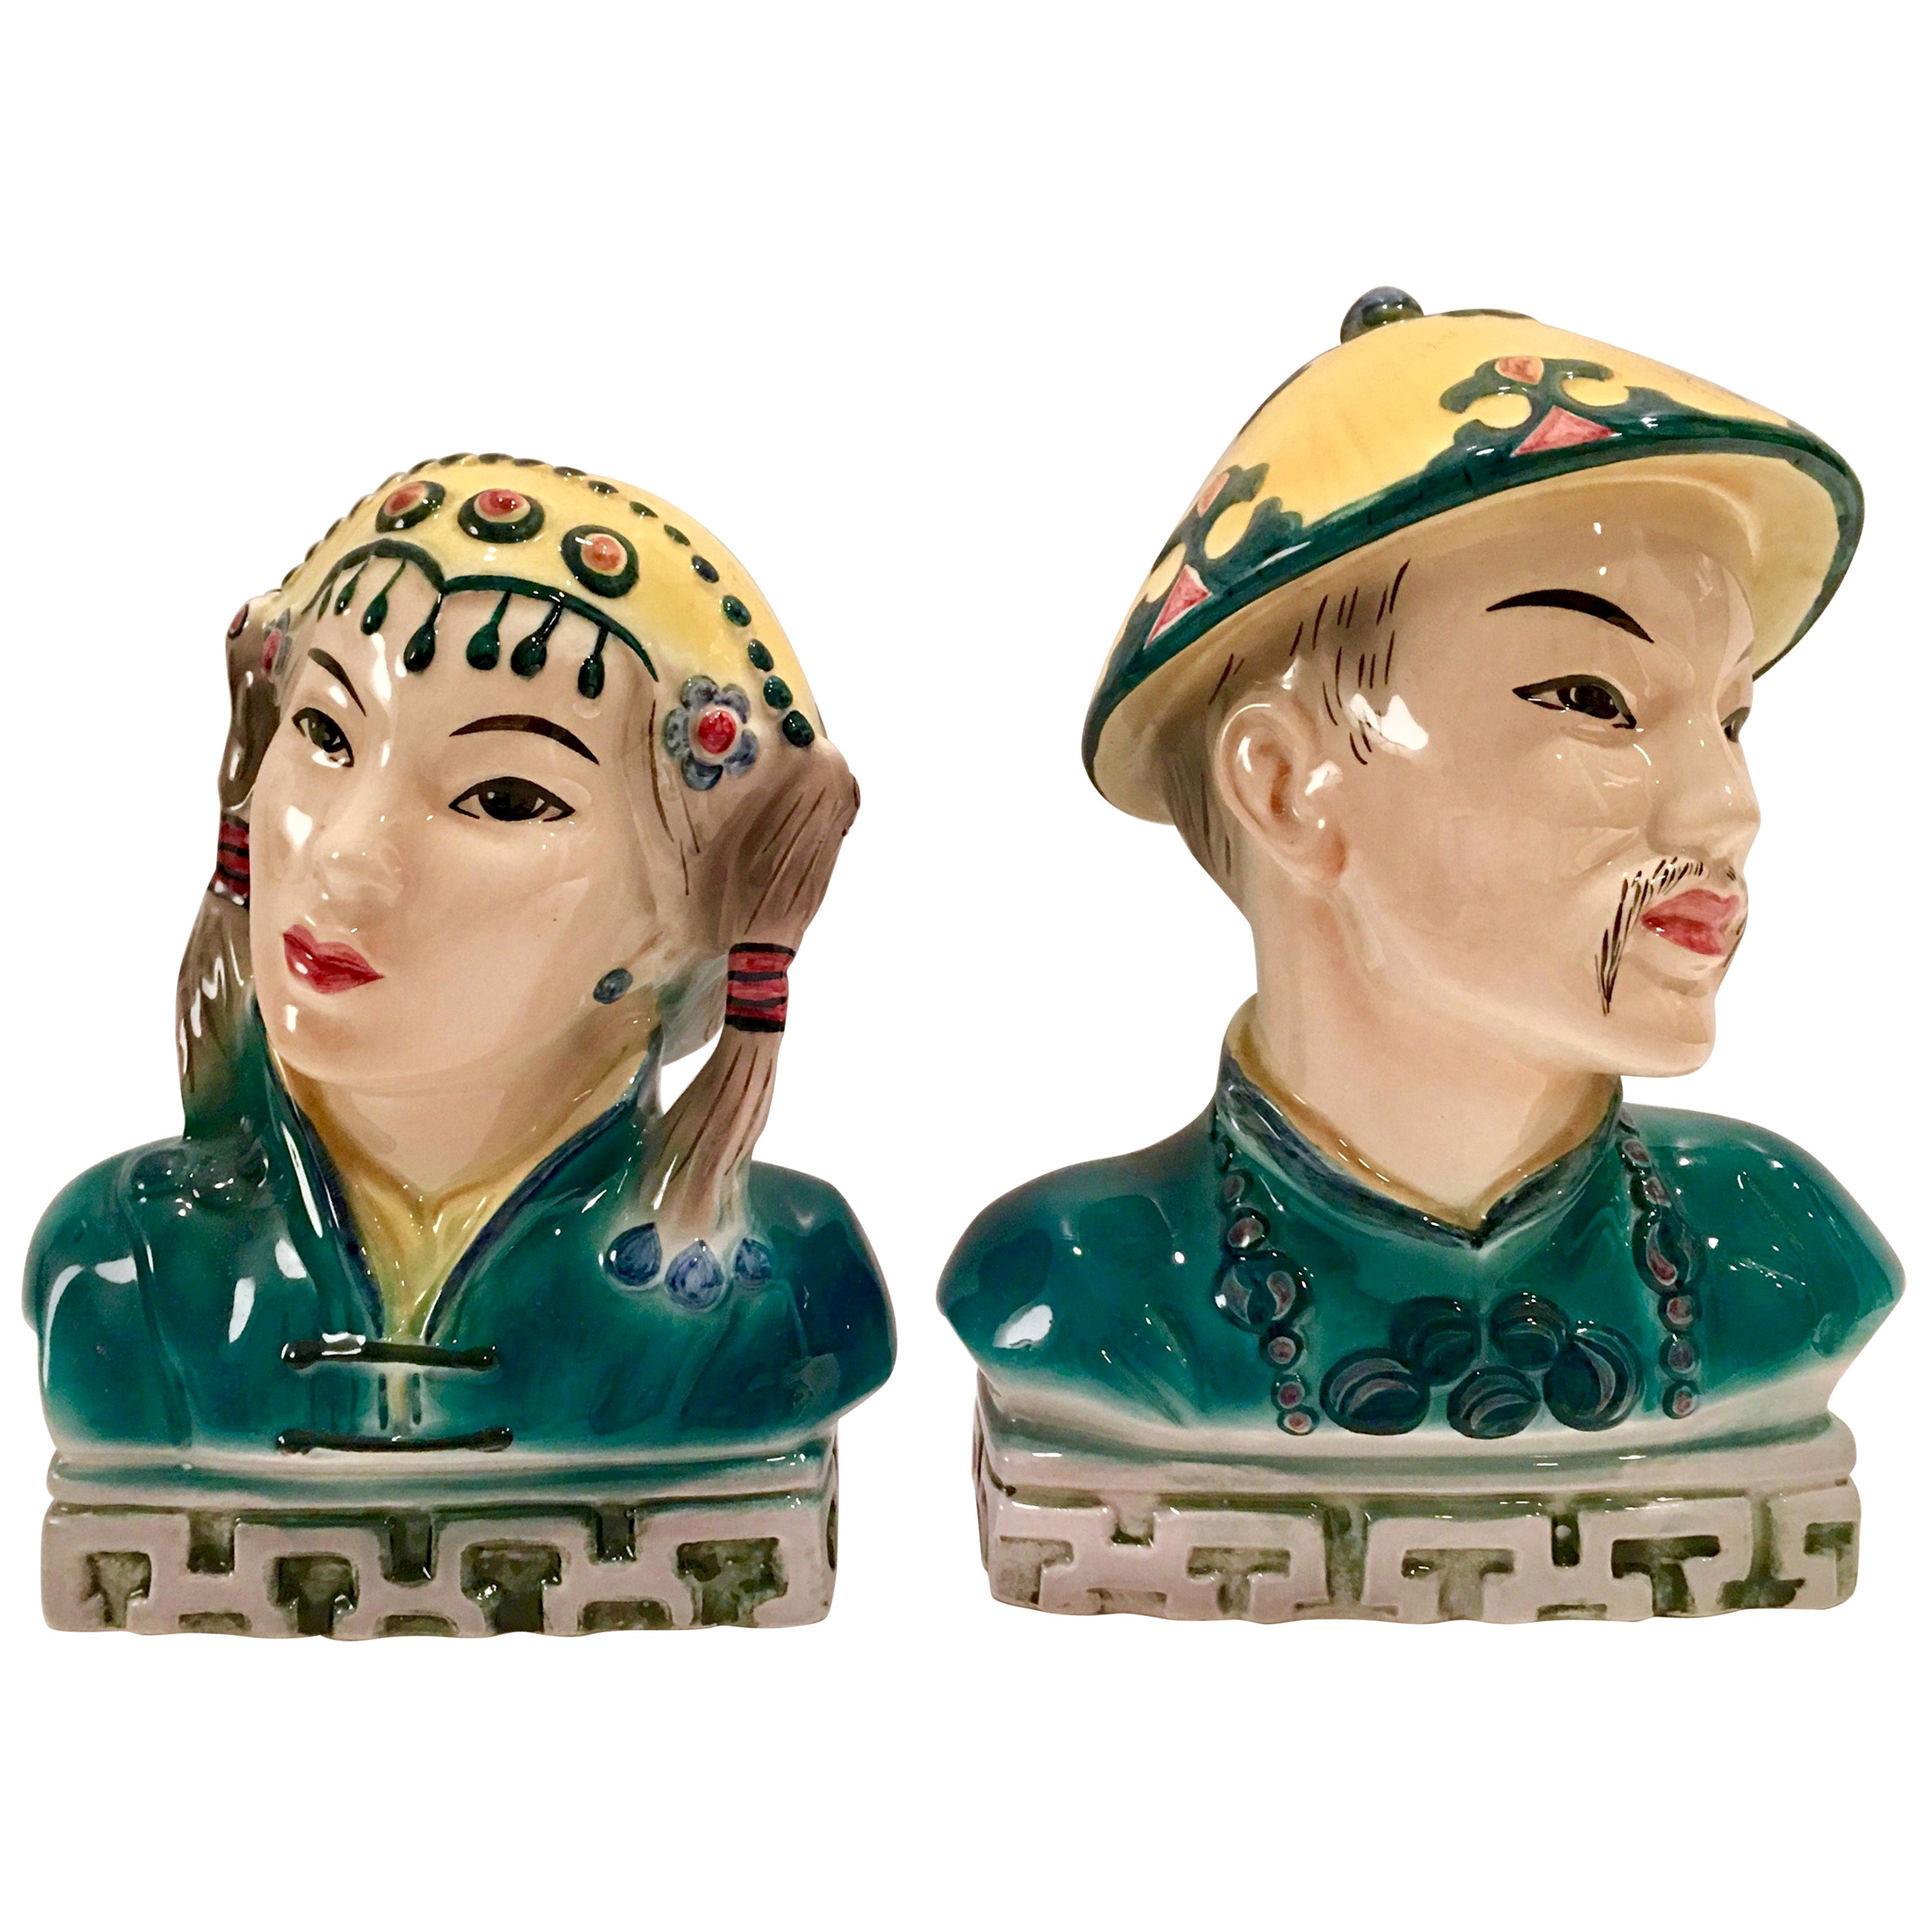 Midcentury Pair of Japanese Hand Painted Porcelain Sculptures by Goldscheider